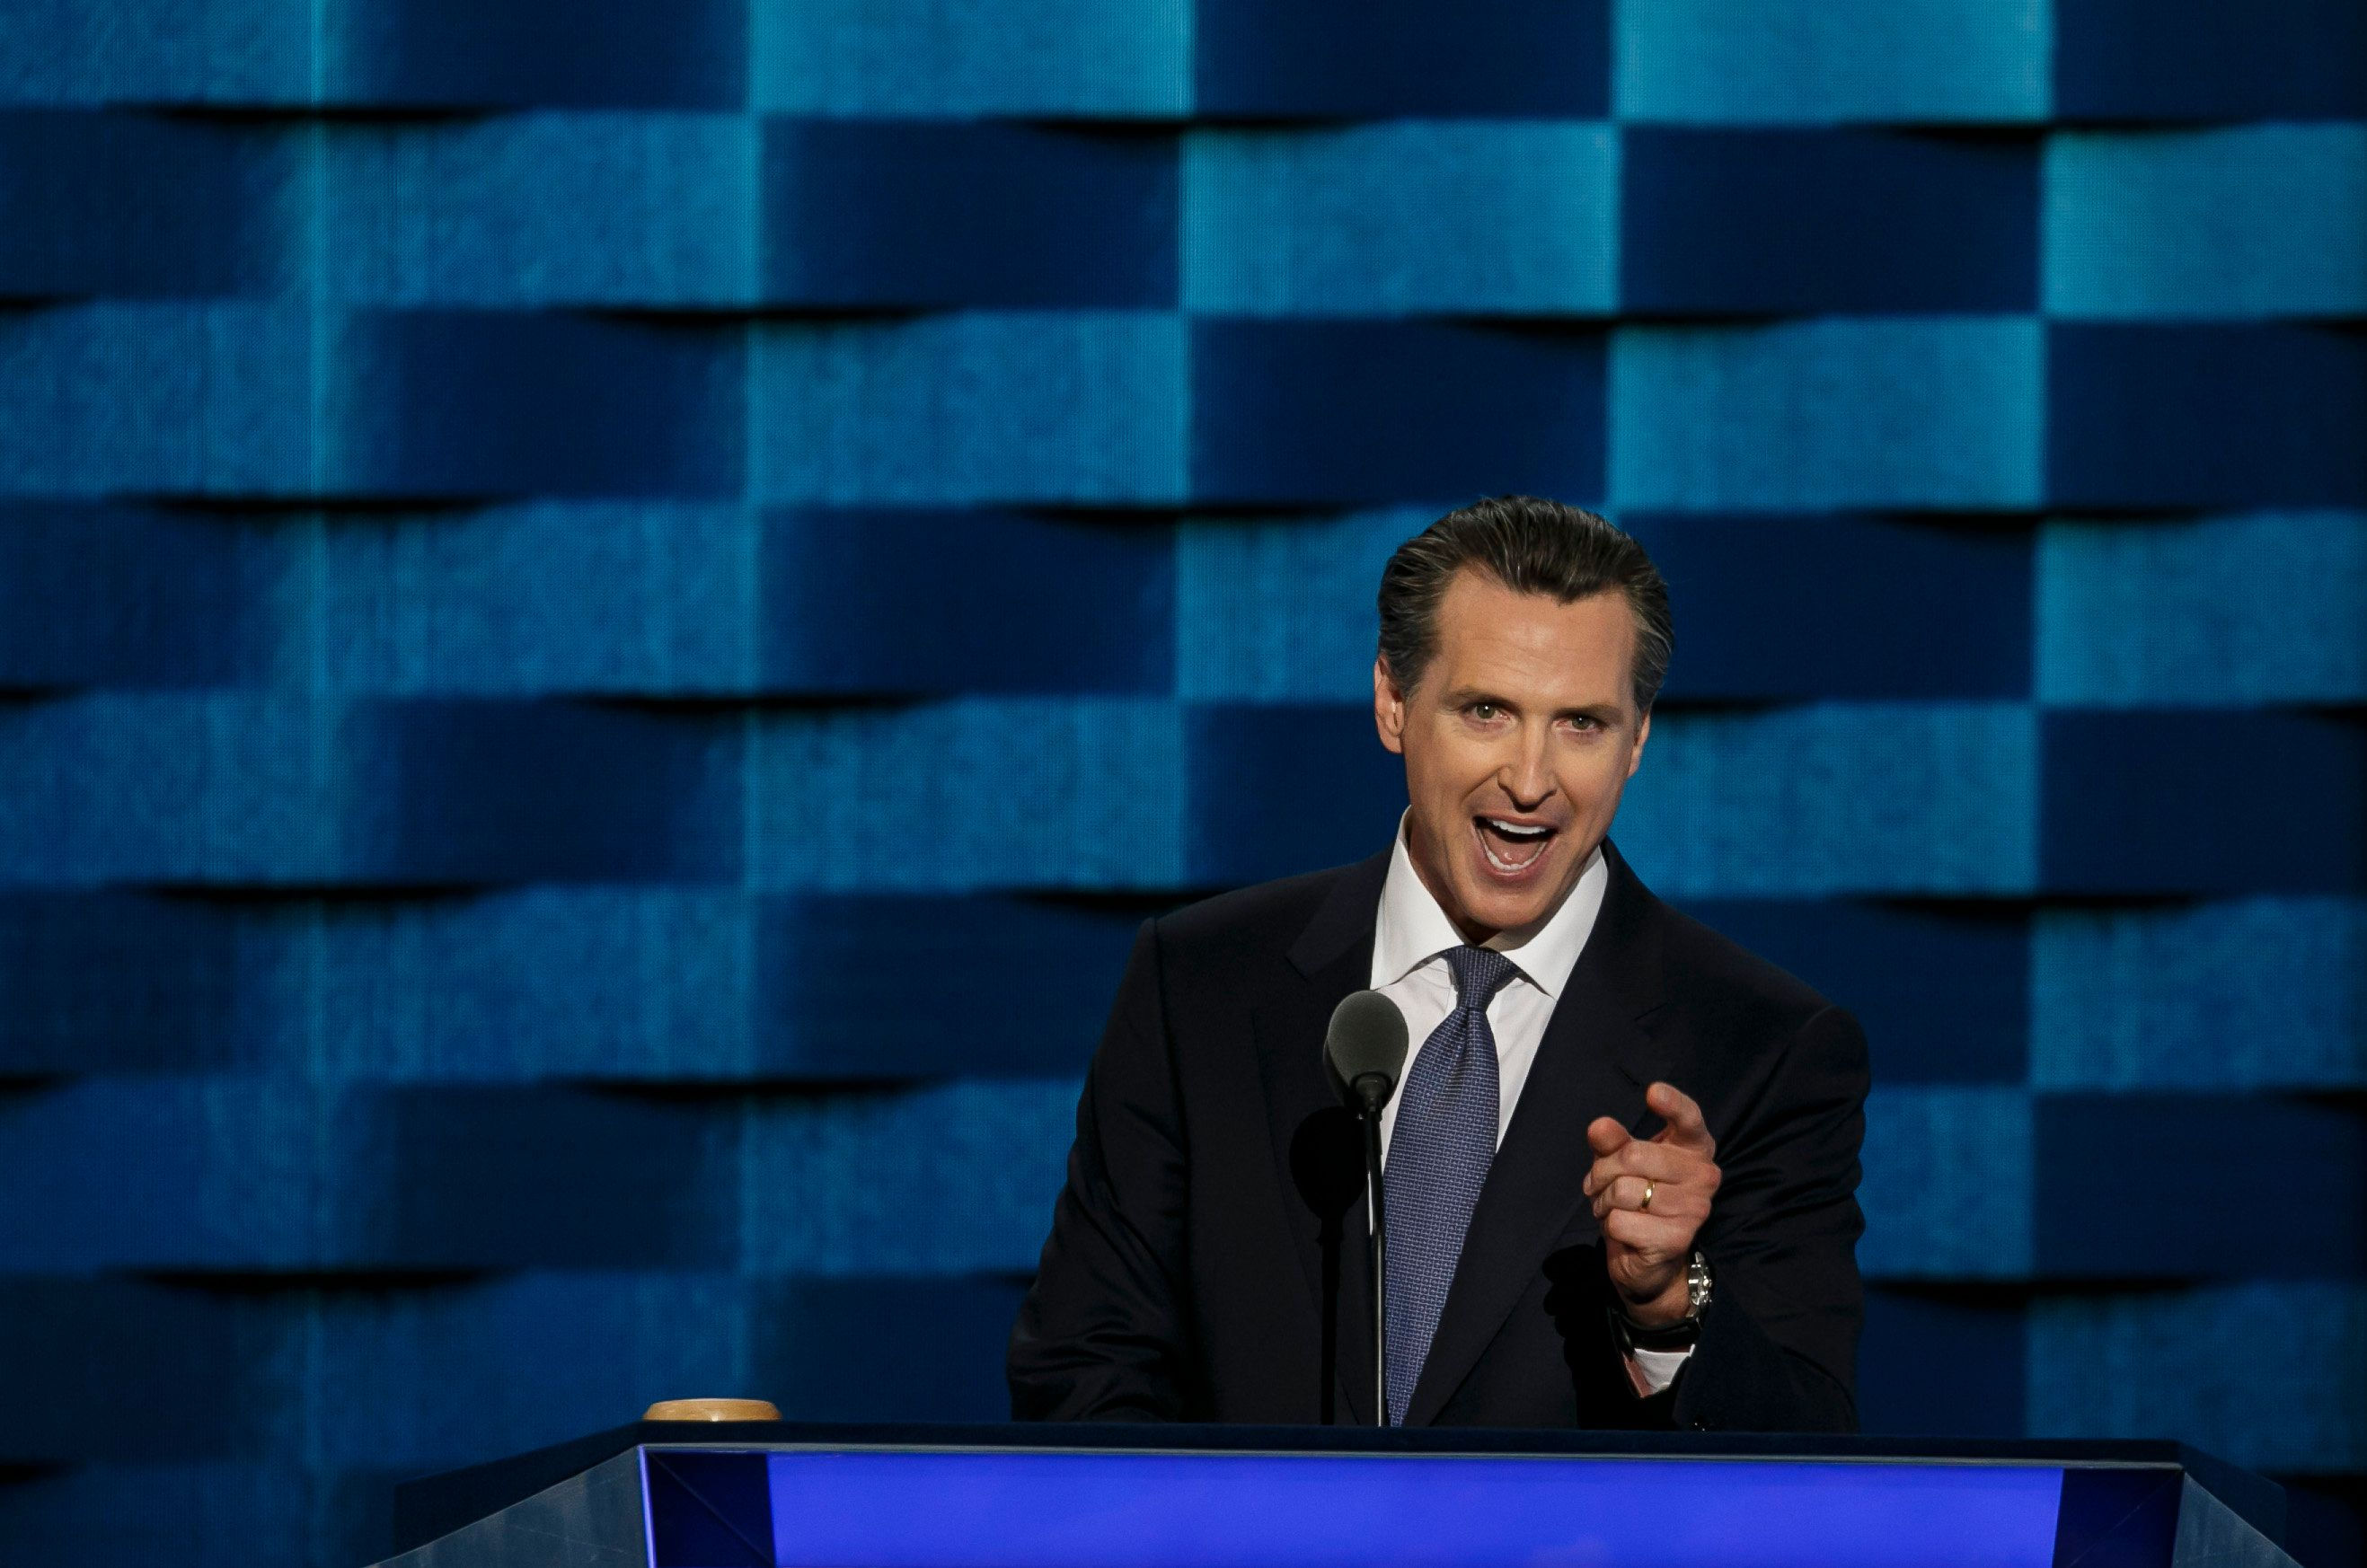 PHILADELPHIA, PA. -- WEDNESDAY, JULY 27, 2016: California Lieutenant Governor Gavin Newsom at the 2016 Democratic National Convention, in Philadelphia, Pa., on July 27, 2016. (Photo by Marcus Yam/Los Angeles Times via Getty Images)